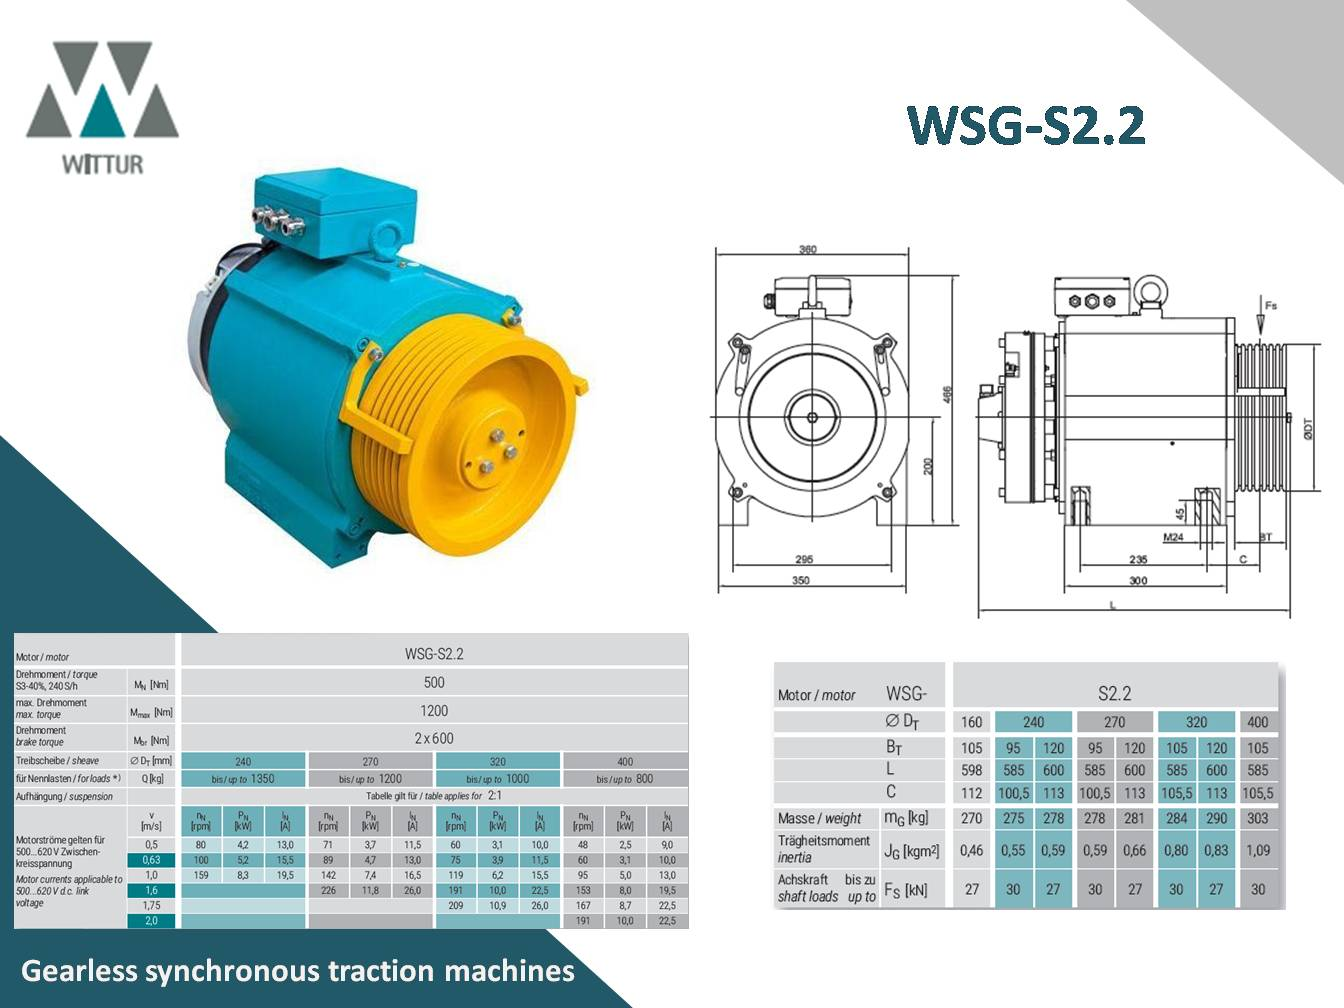 http://aasansor.ir/images/product/3_type_of_parts/1_motor/2_gearboxless/1_germany/witur/Slide3.jpg